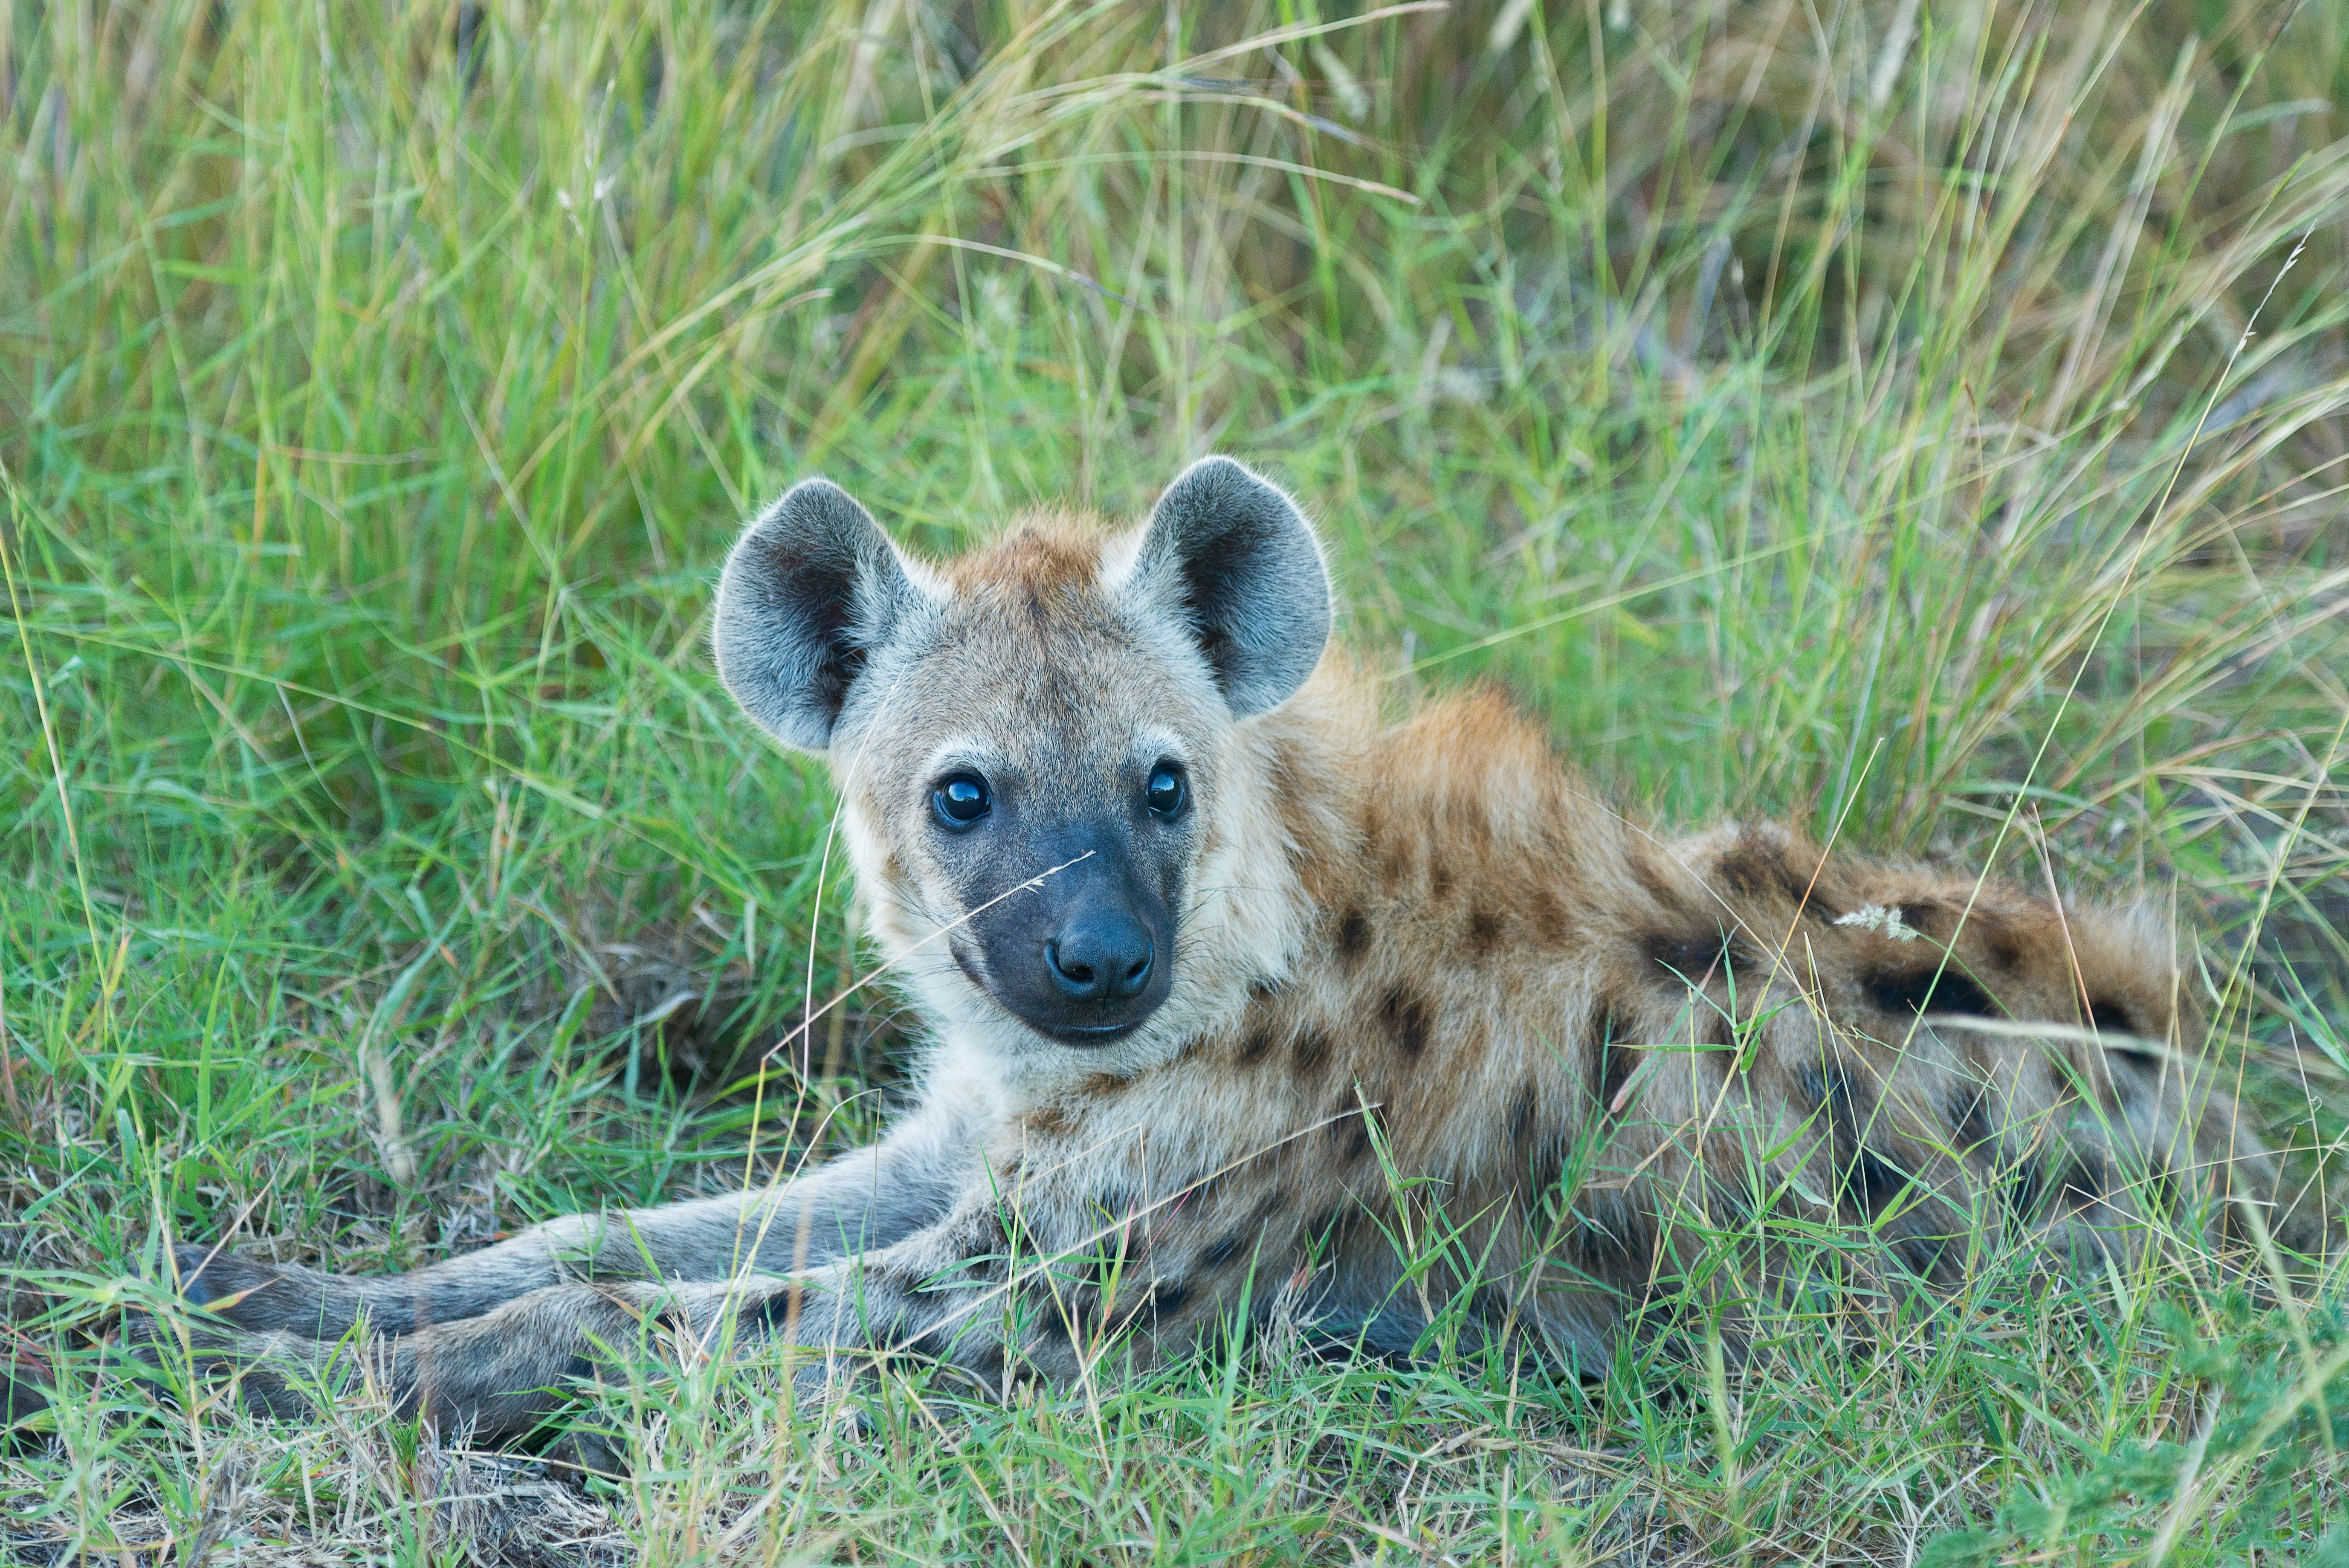 brown and black hyena lying on green grass at daytime